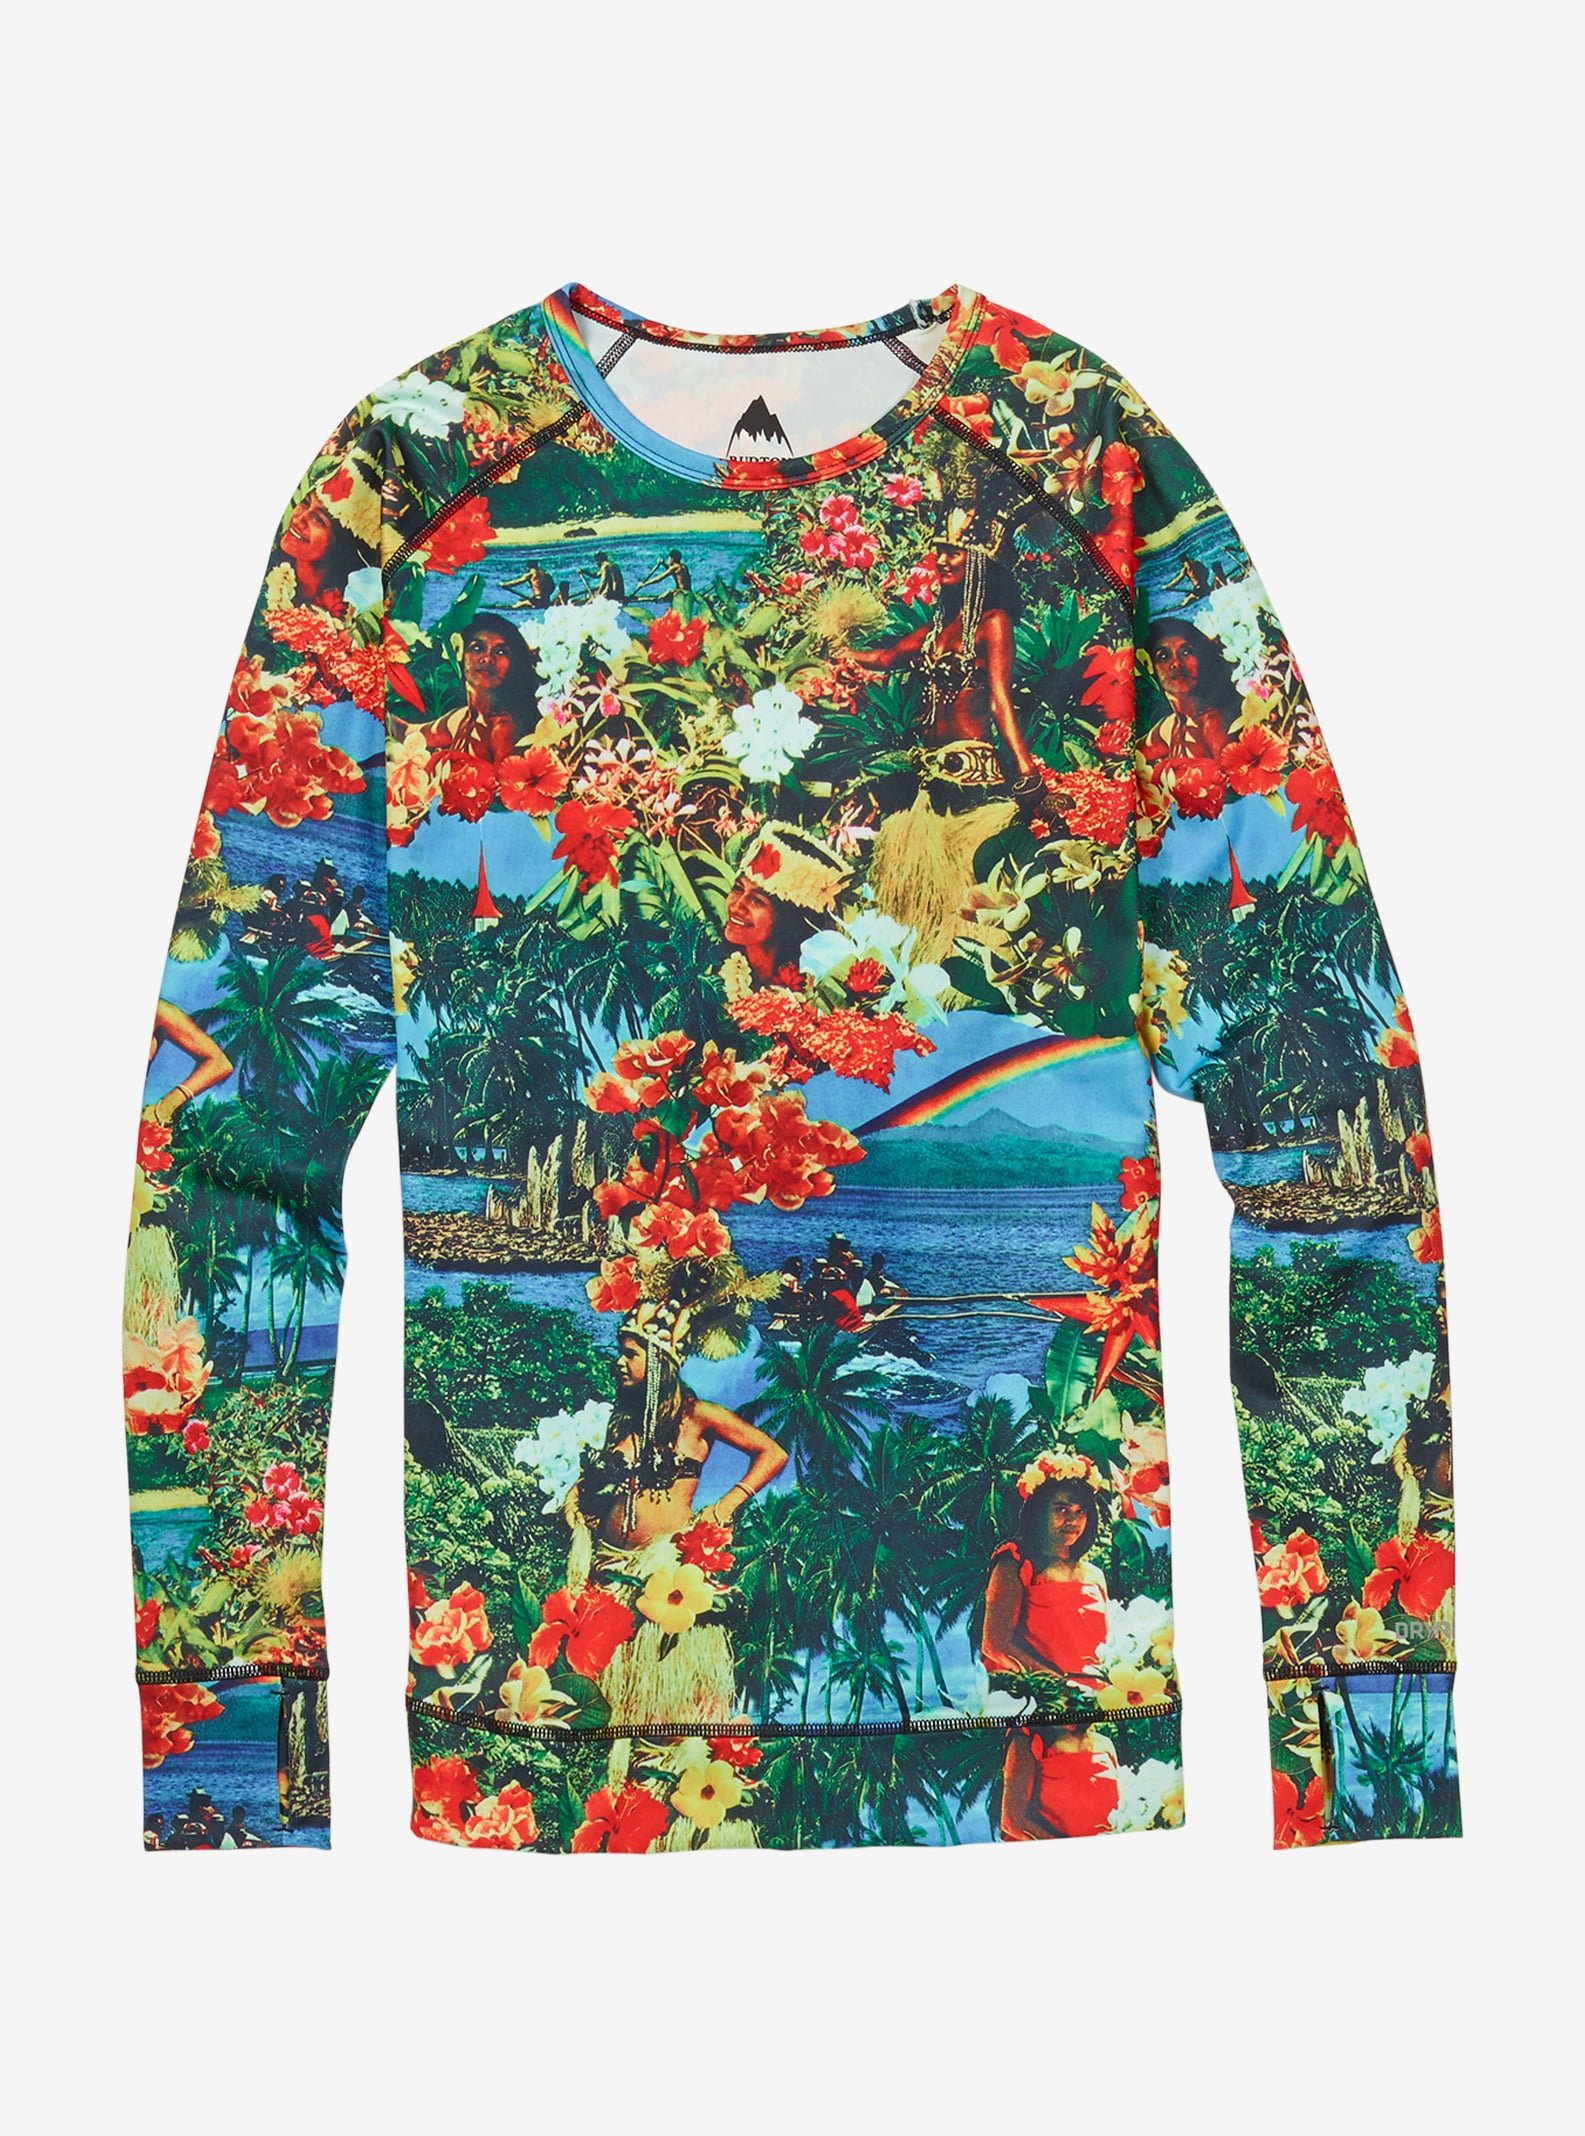 Women's Burton Base Layer Lightweight Crew shown in Maui Wowie